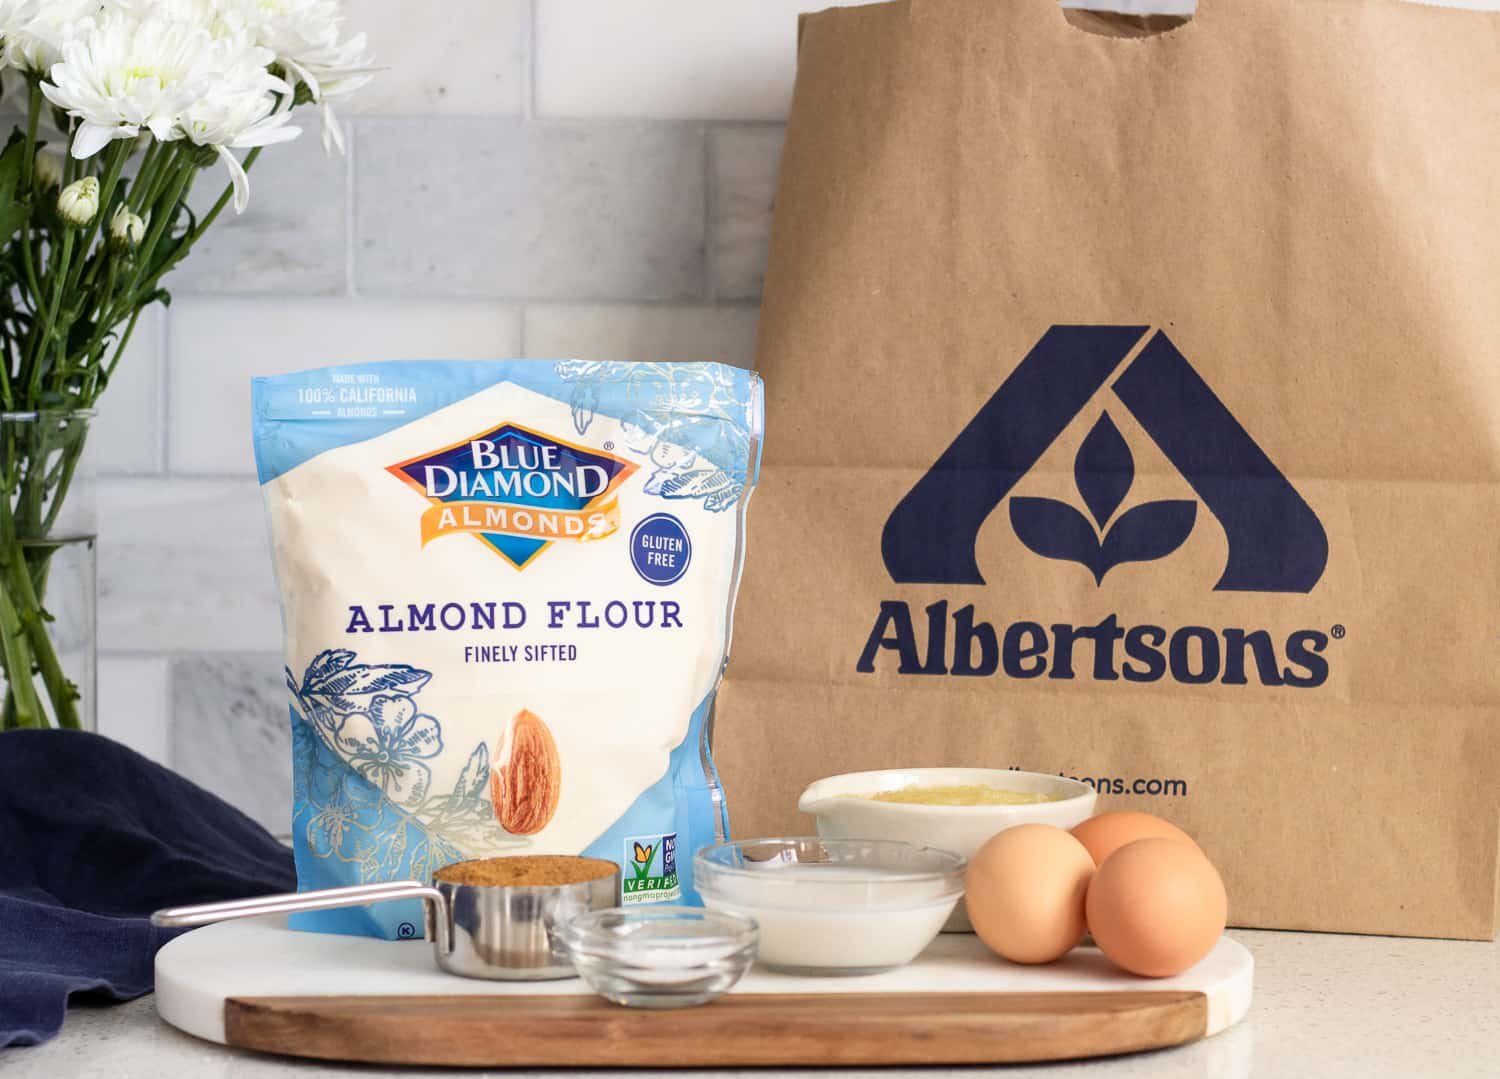 Albertson's paper bag in the background and Blue Diamond Almond Flour package with other ingredients.